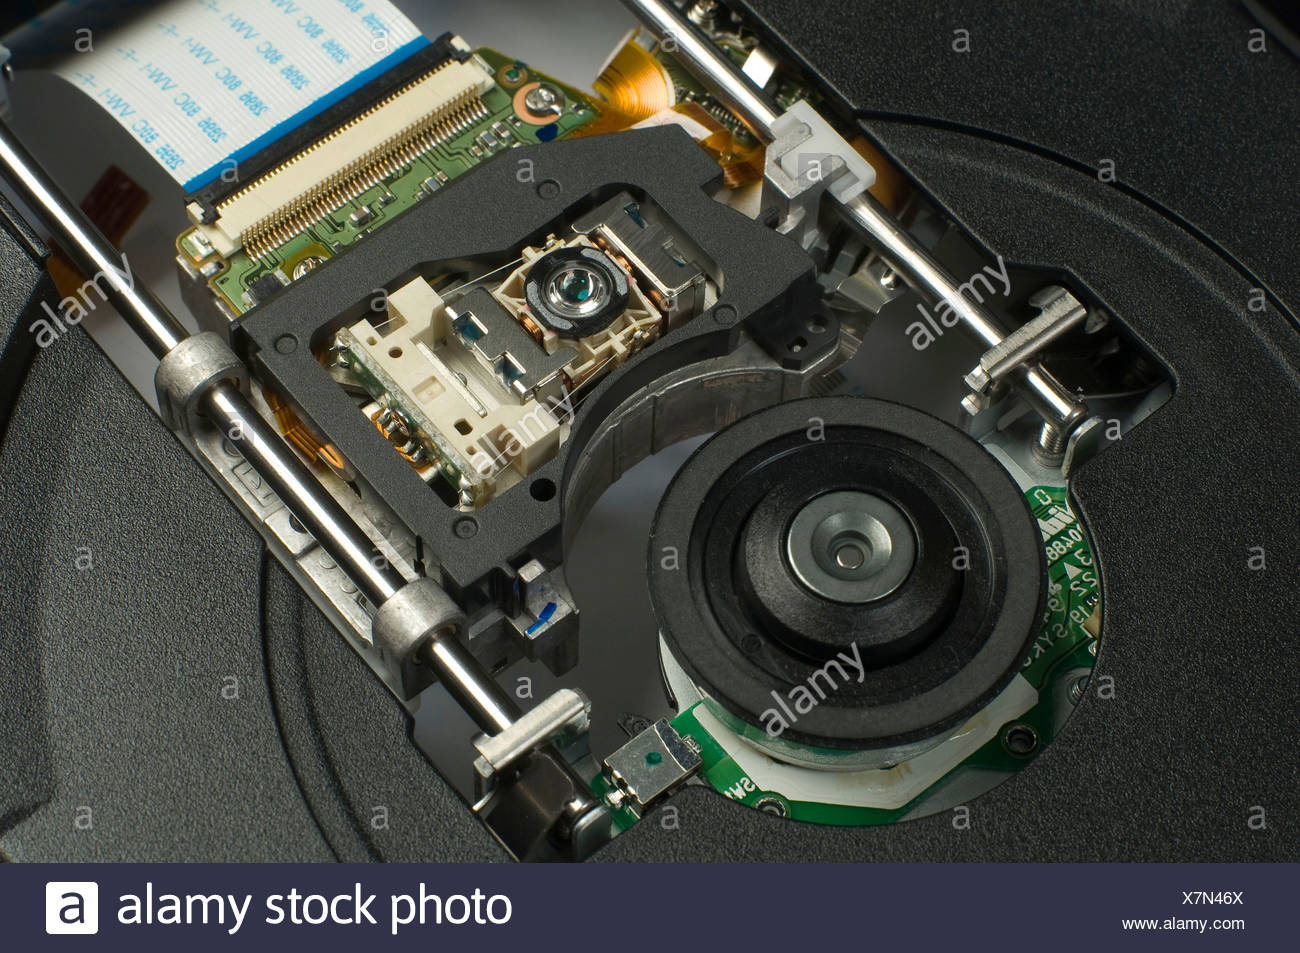 Sony DVD Blu-ray Player in detail - Stock Image